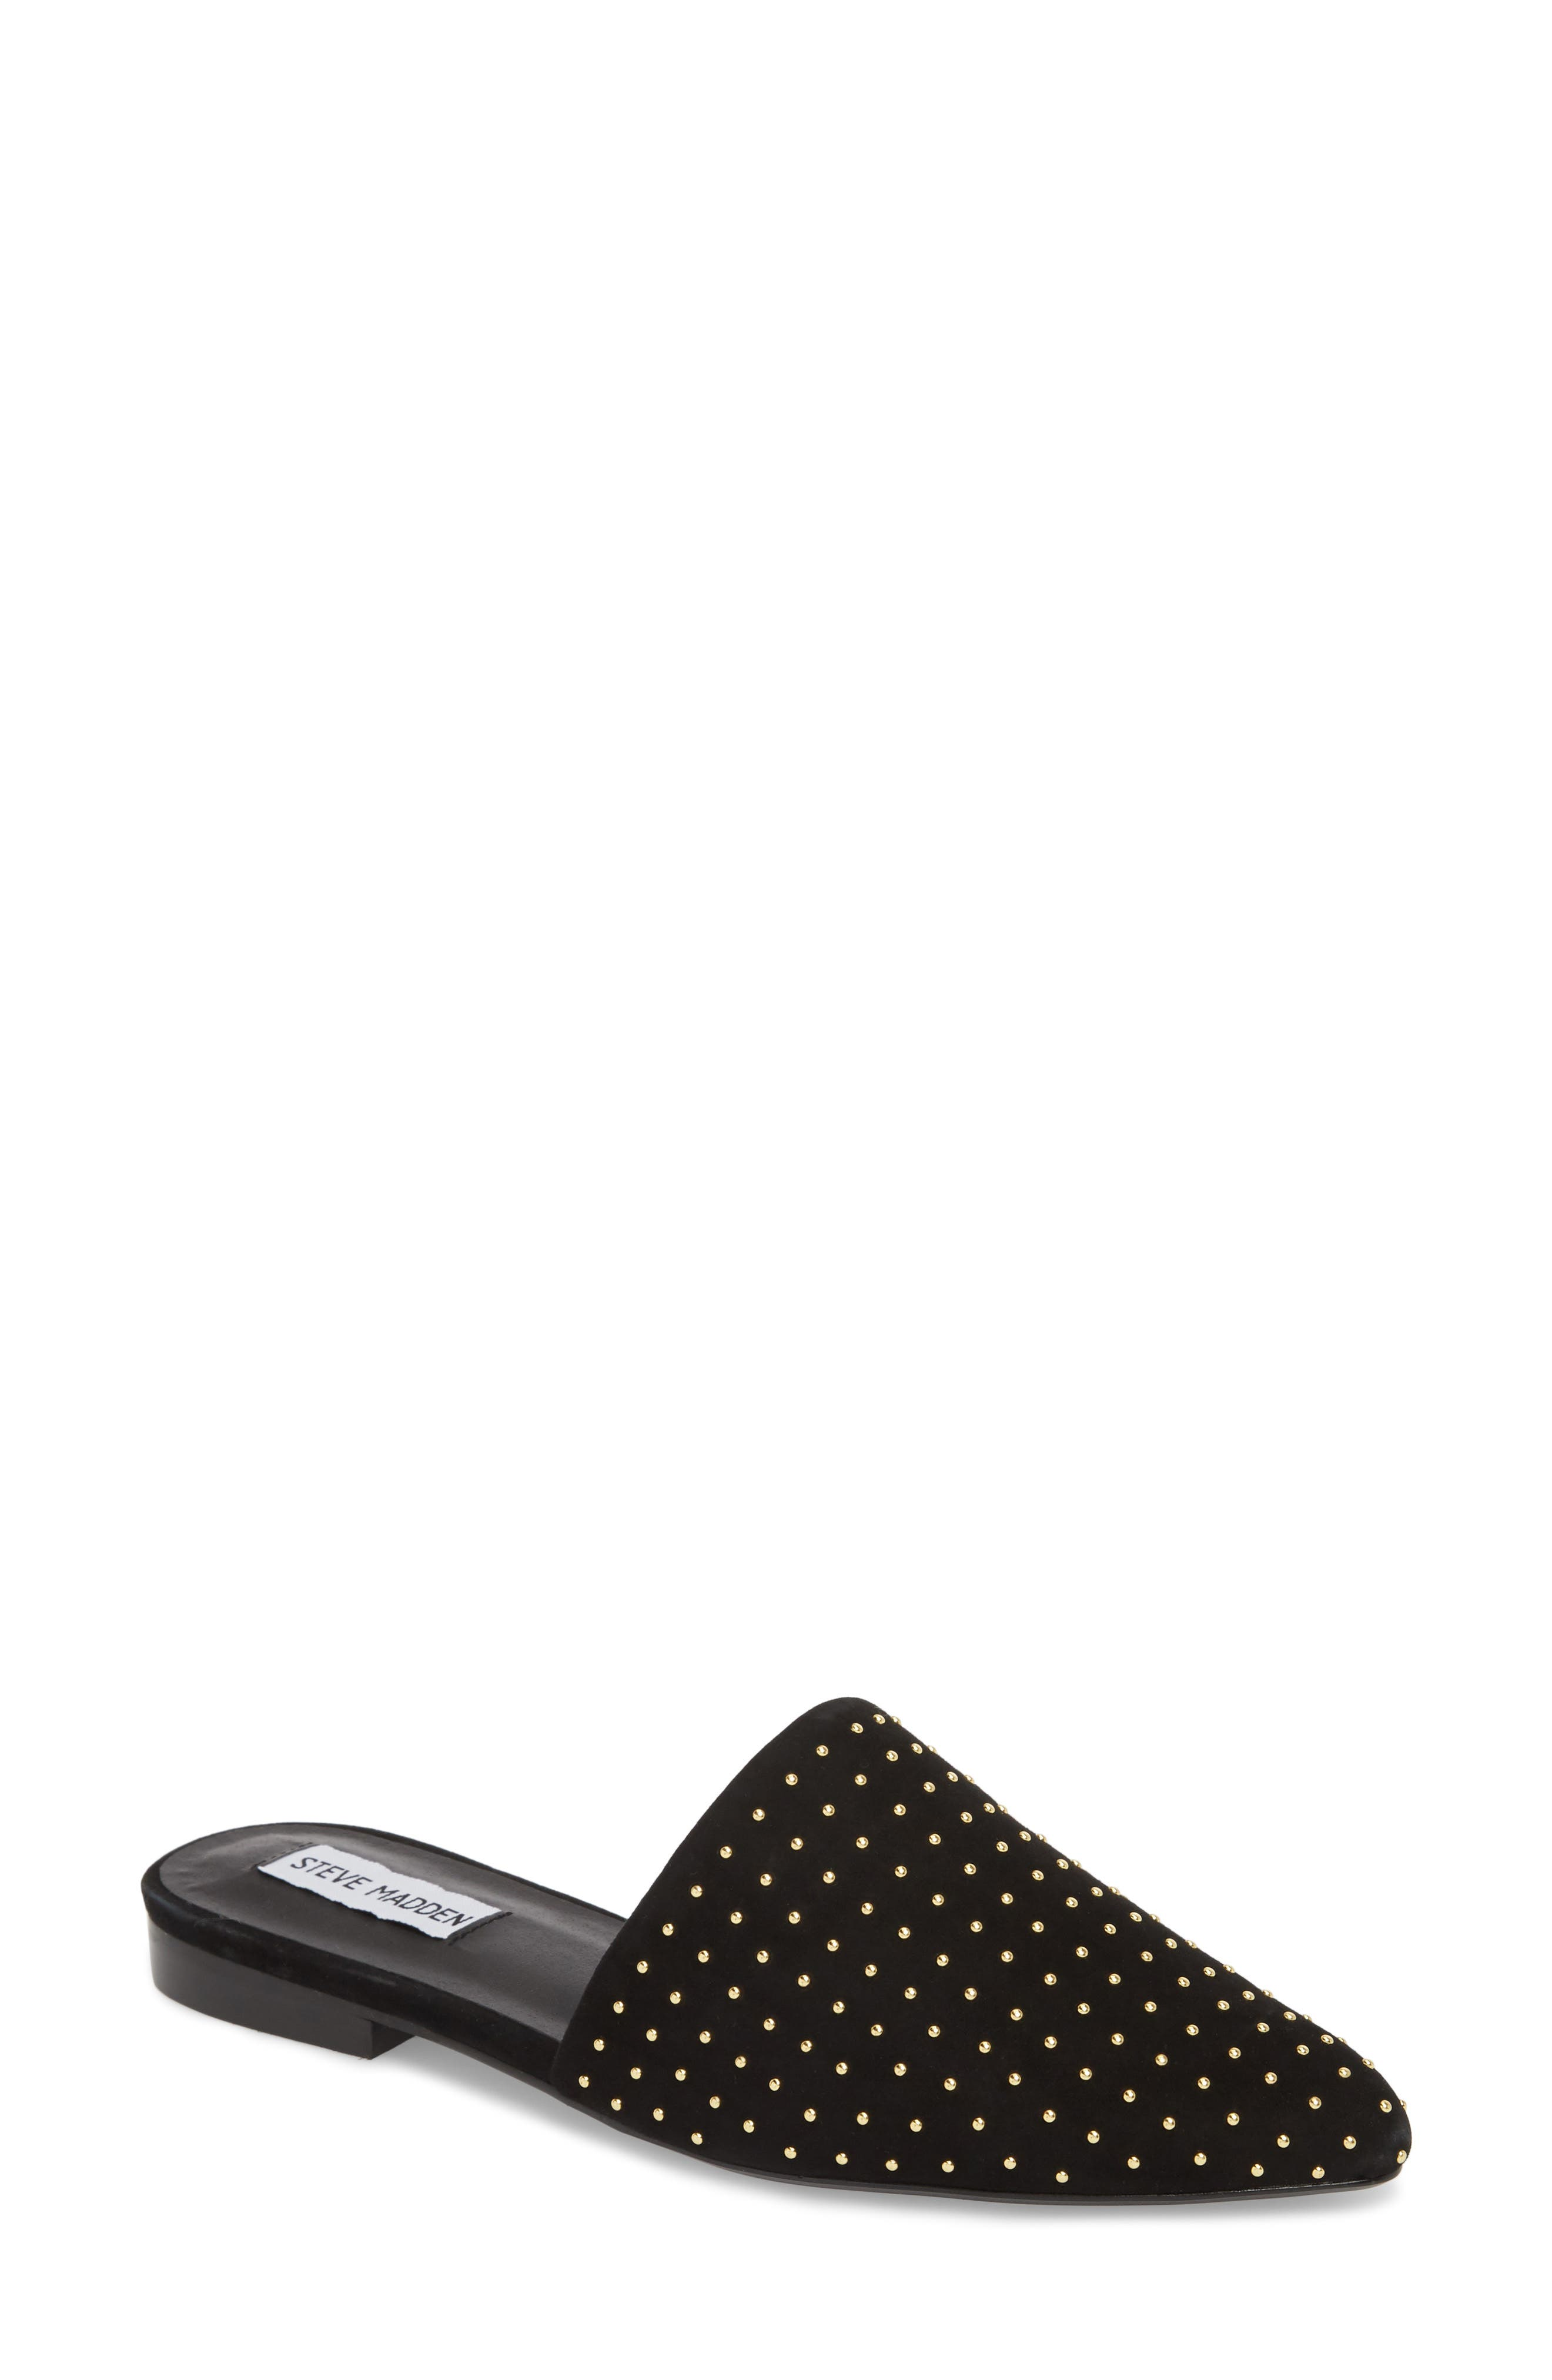 Trace Studded Mule,                             Main thumbnail 1, color,                             Black With Stud